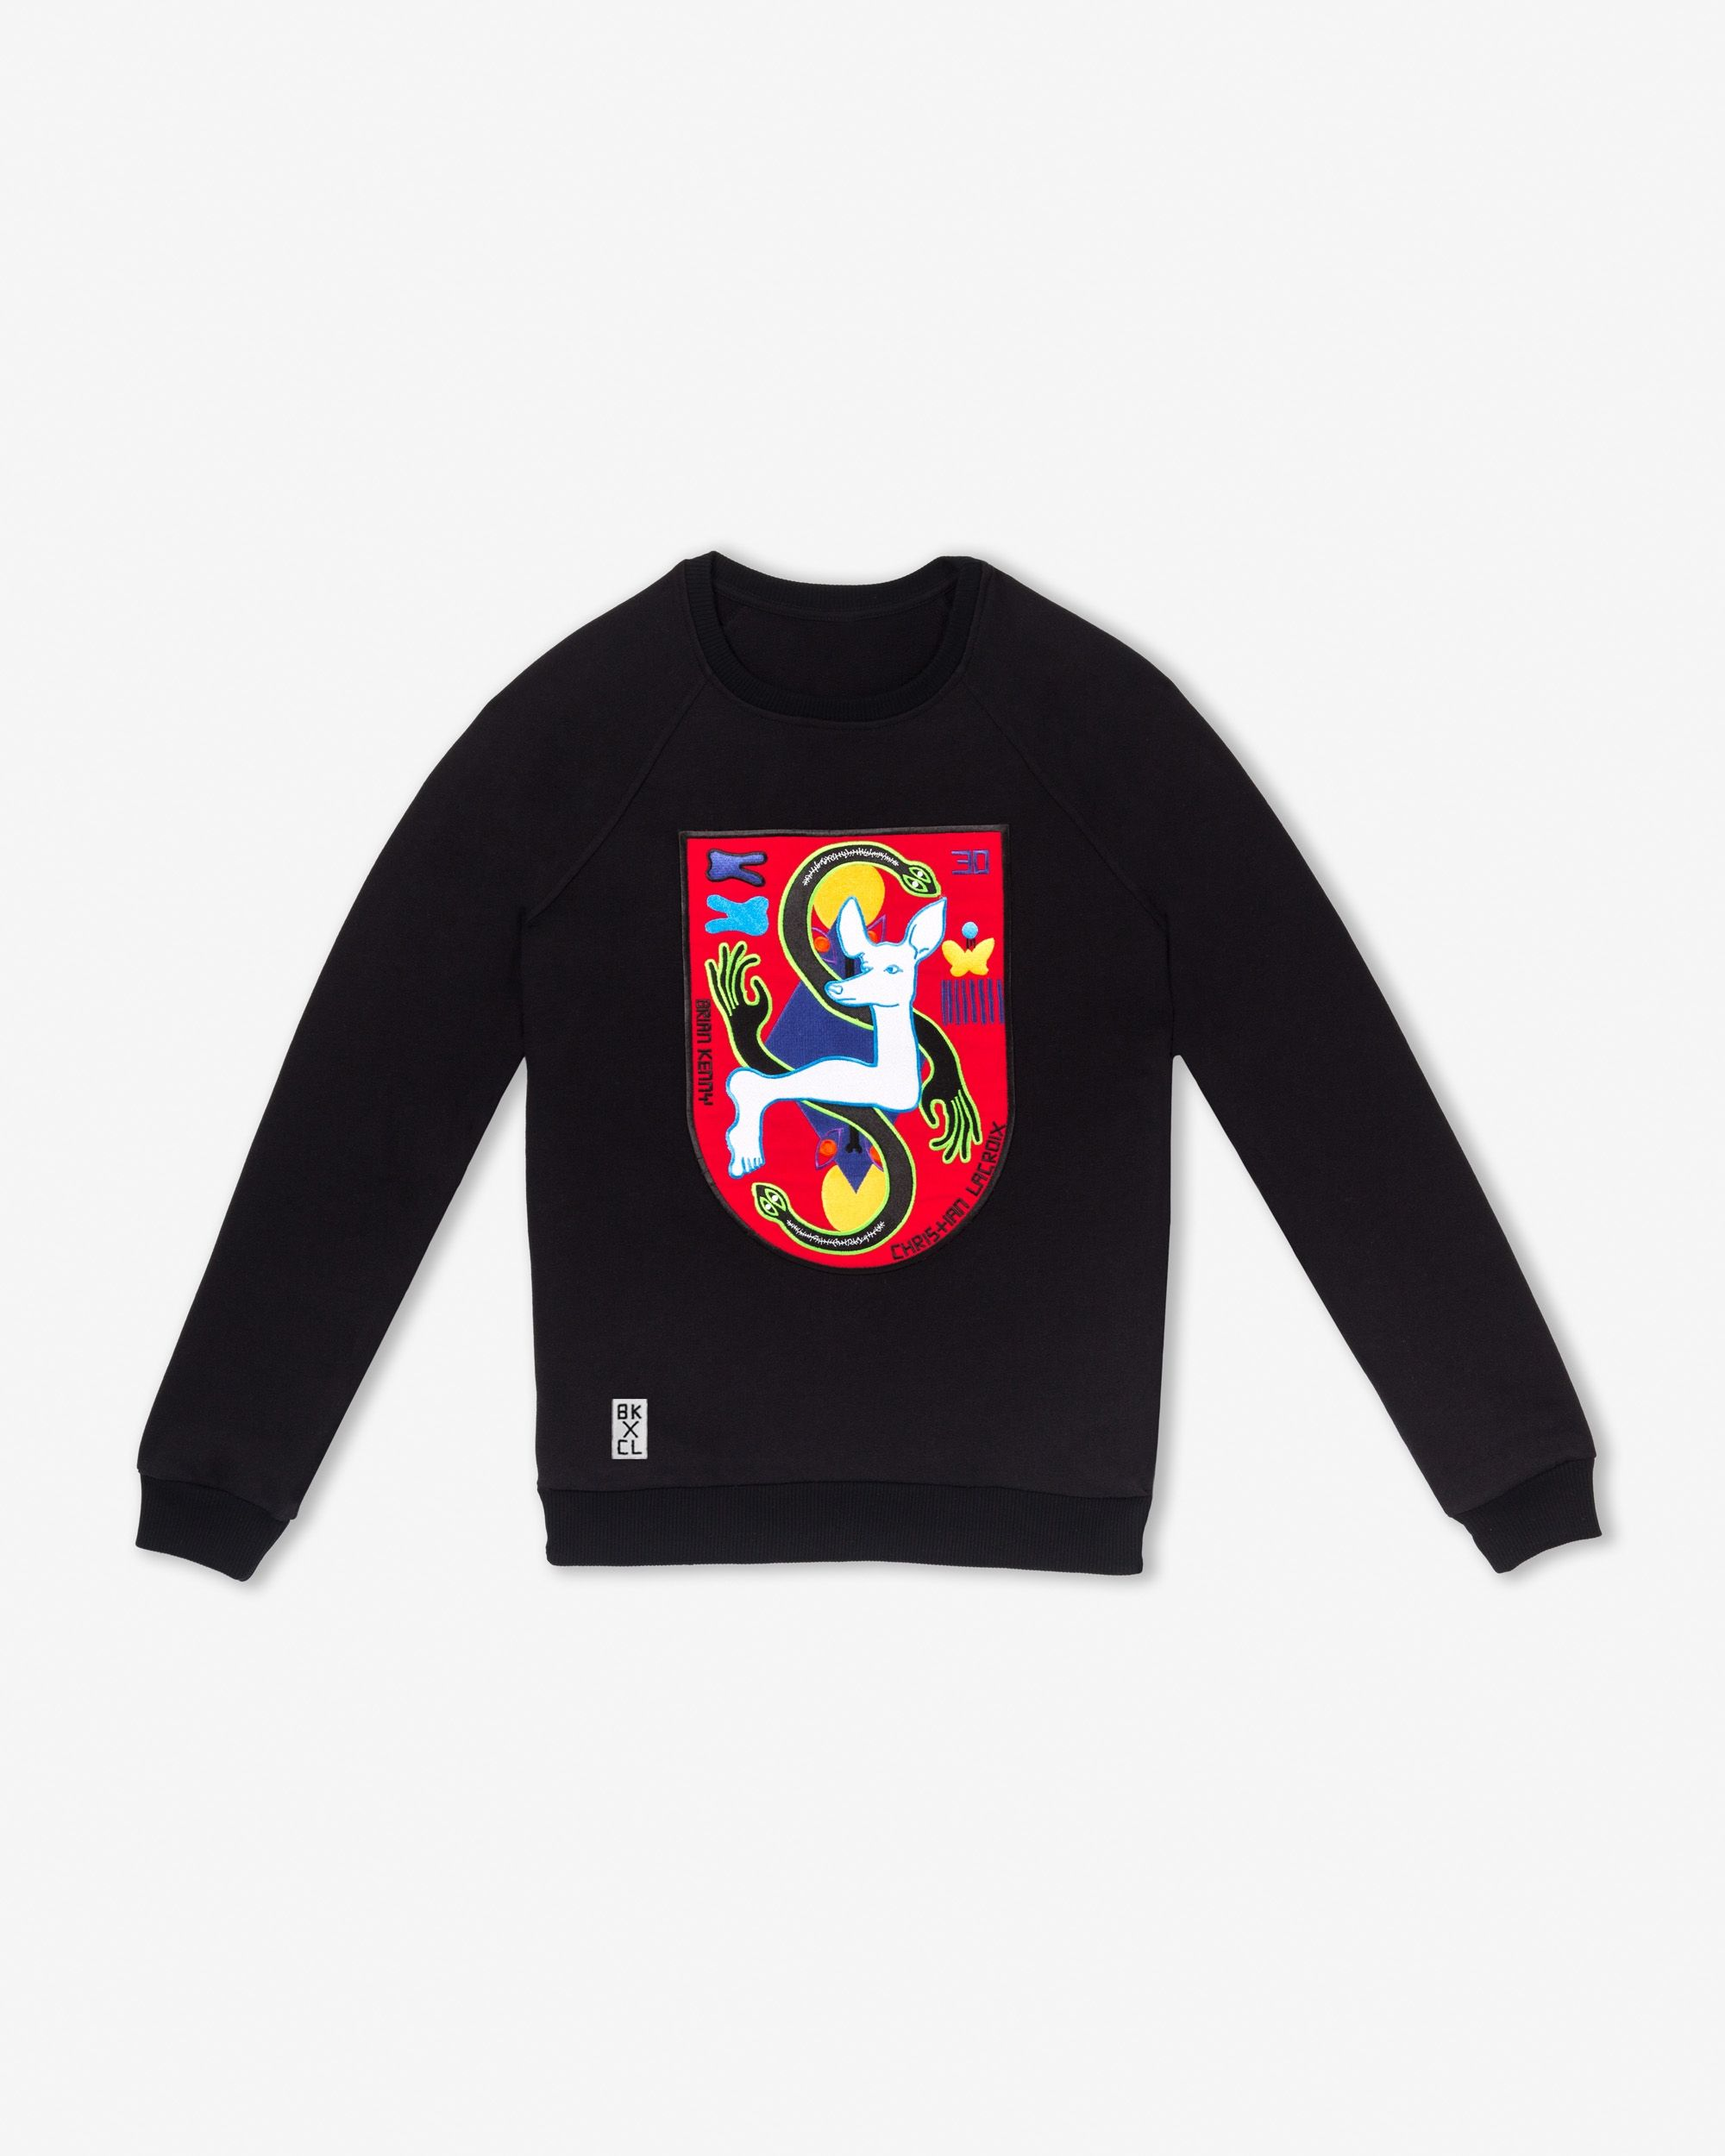 lacroix_30_ans_cl_x_bk_sweat_coat_of_arms_flatshot_5.jpg